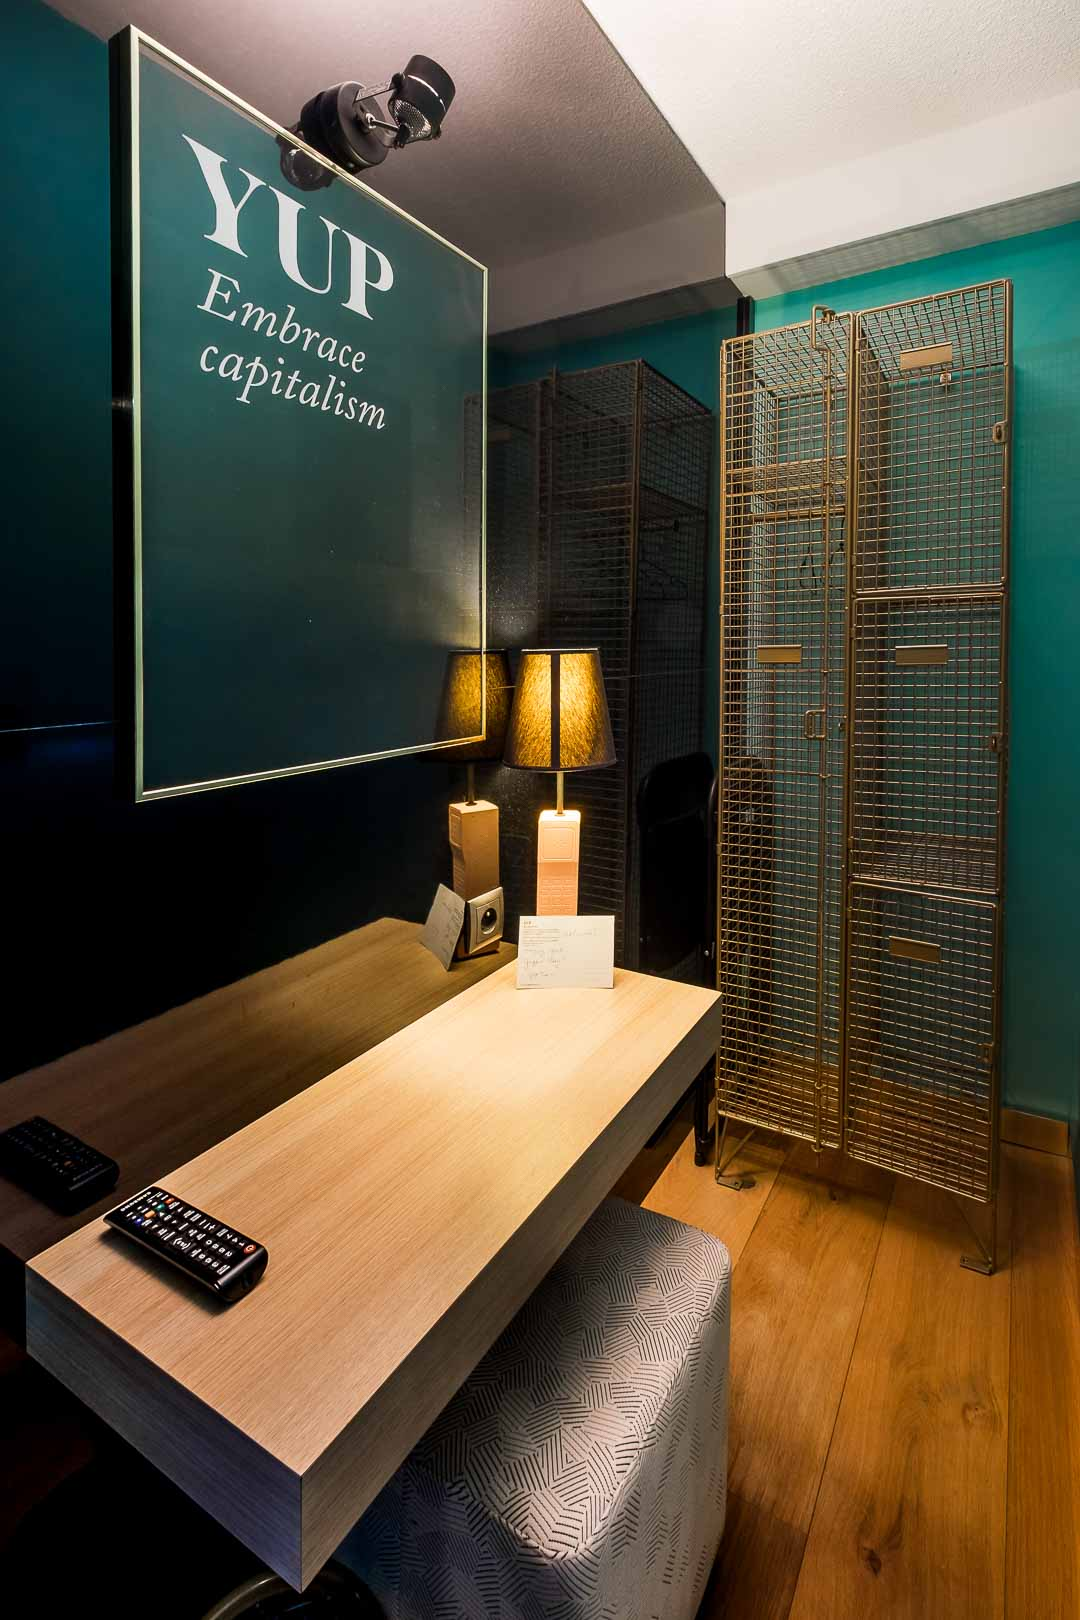 Hotel Yup Hasselt kamer quotes sfeer